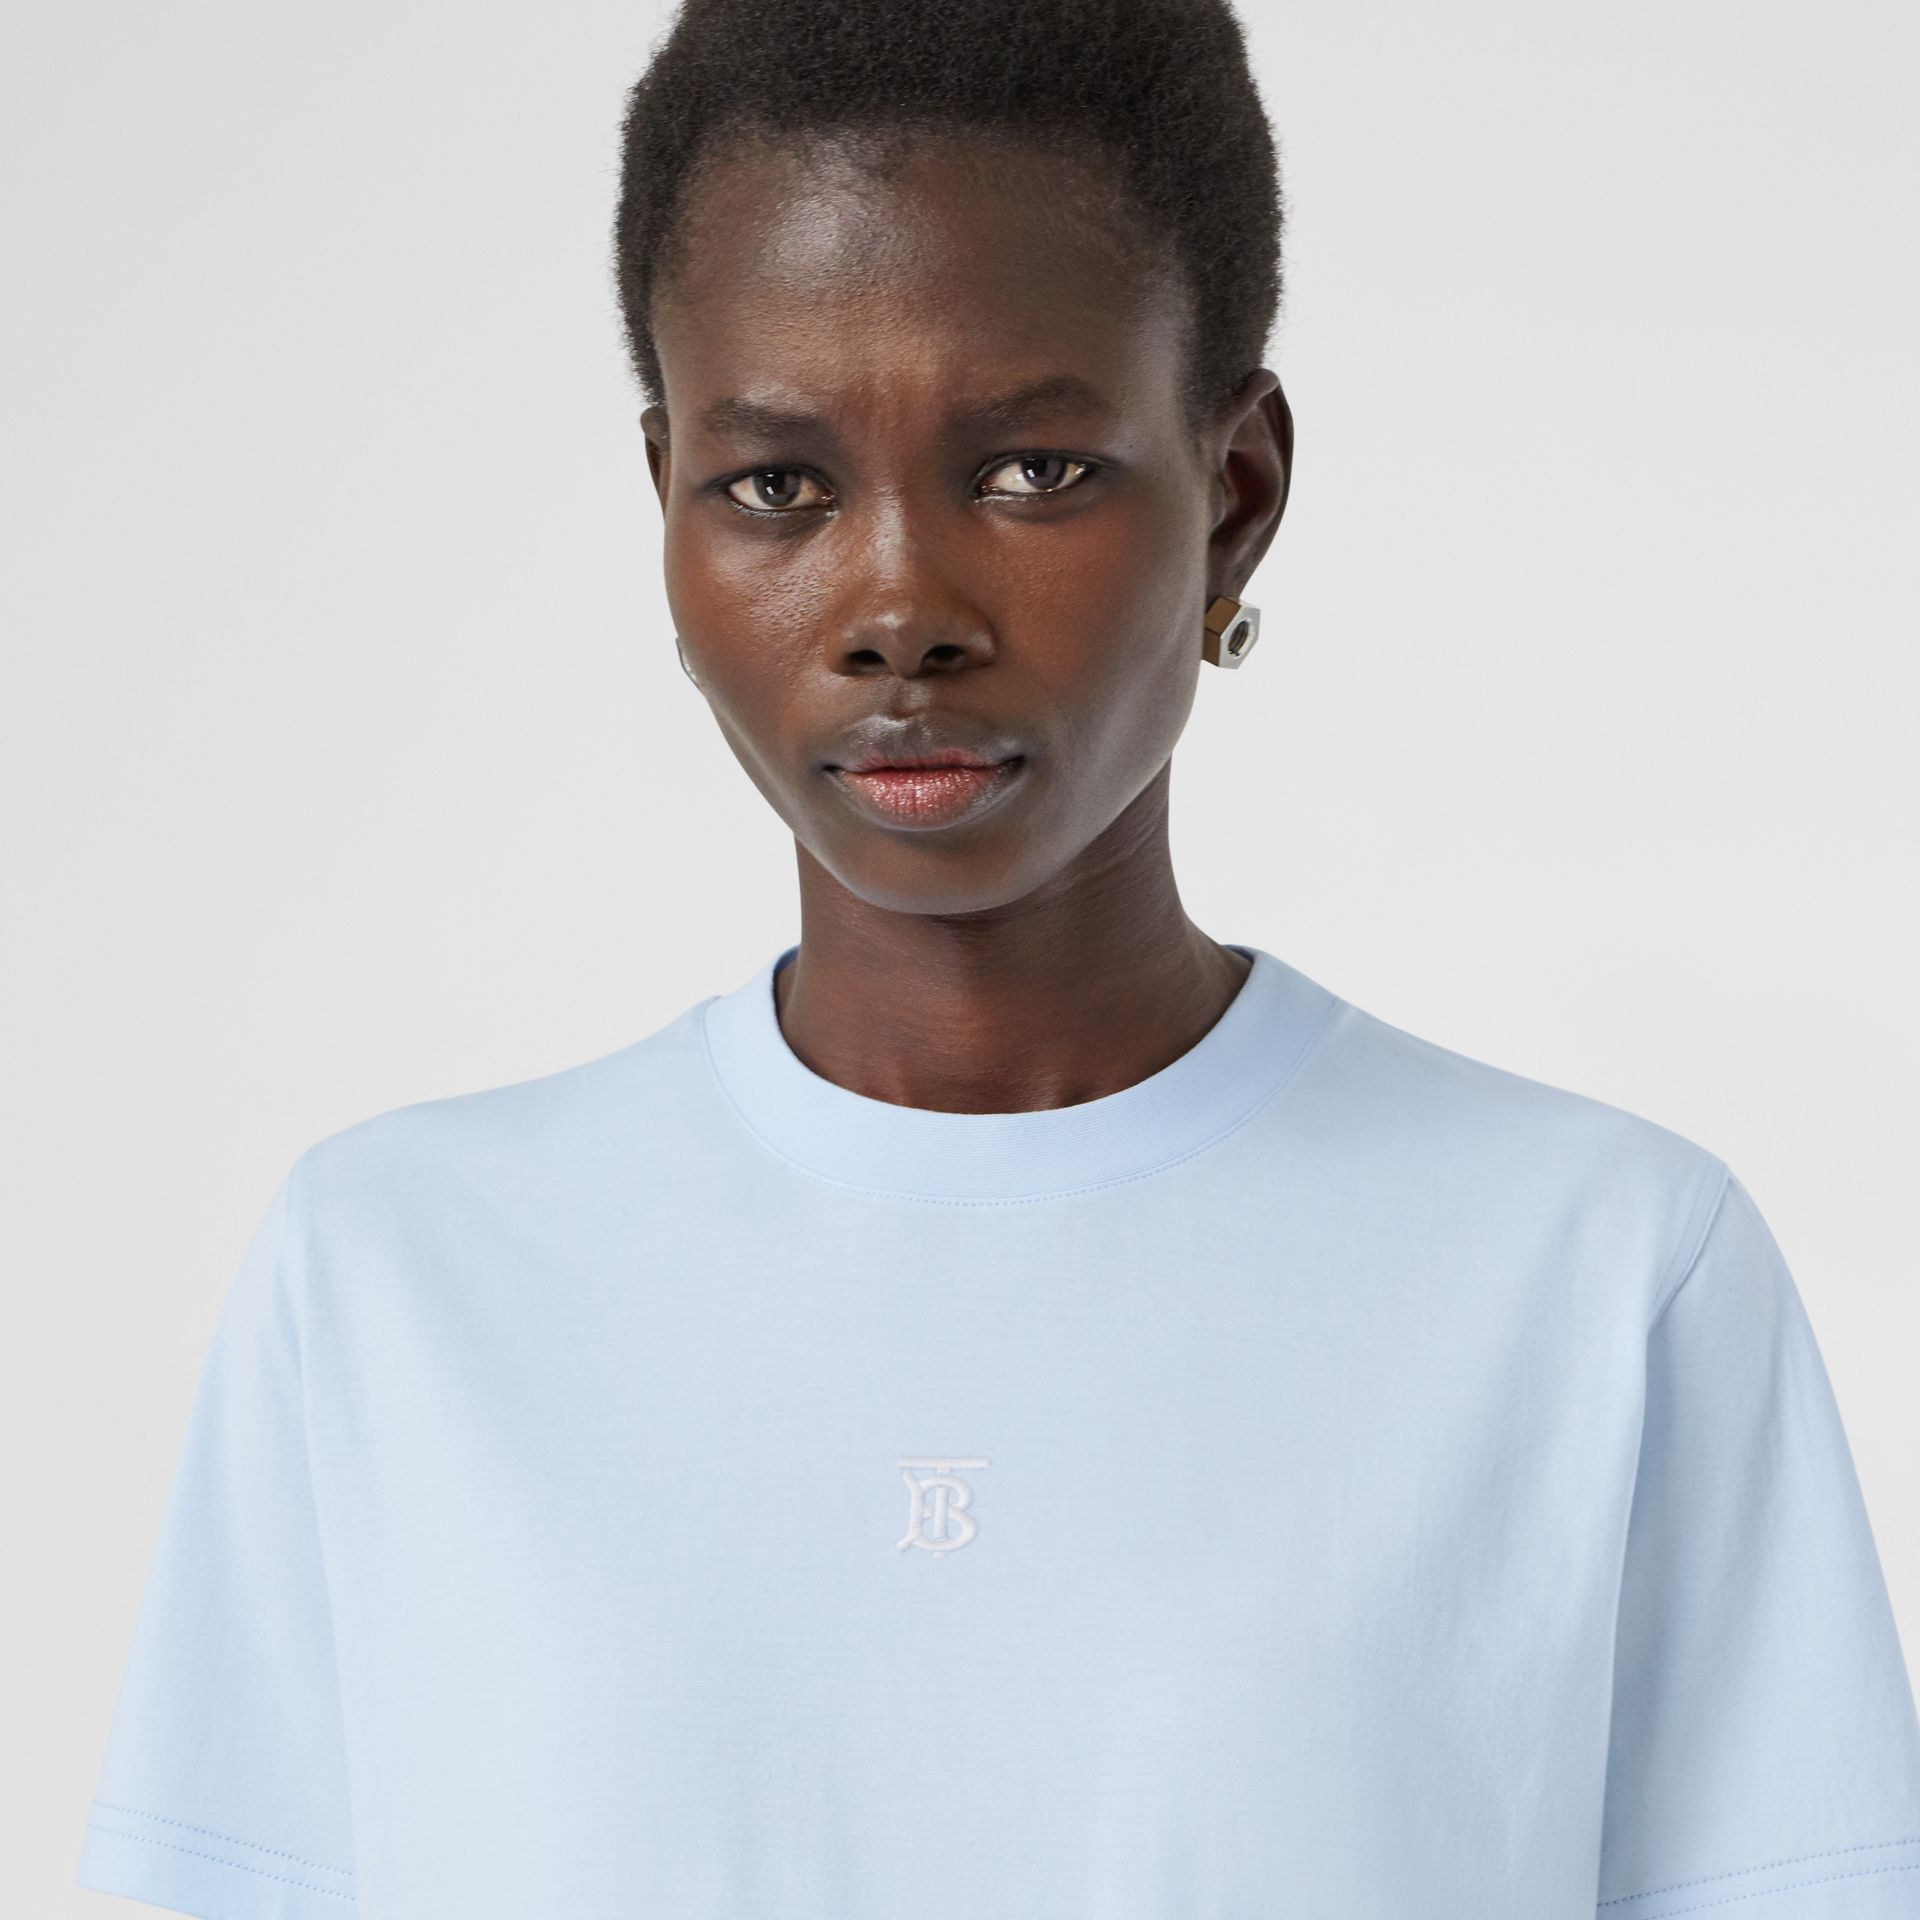 Monogram Motif Cotton T-shirt in Pale Blue - Women | Burberry Canada - gallery image 1